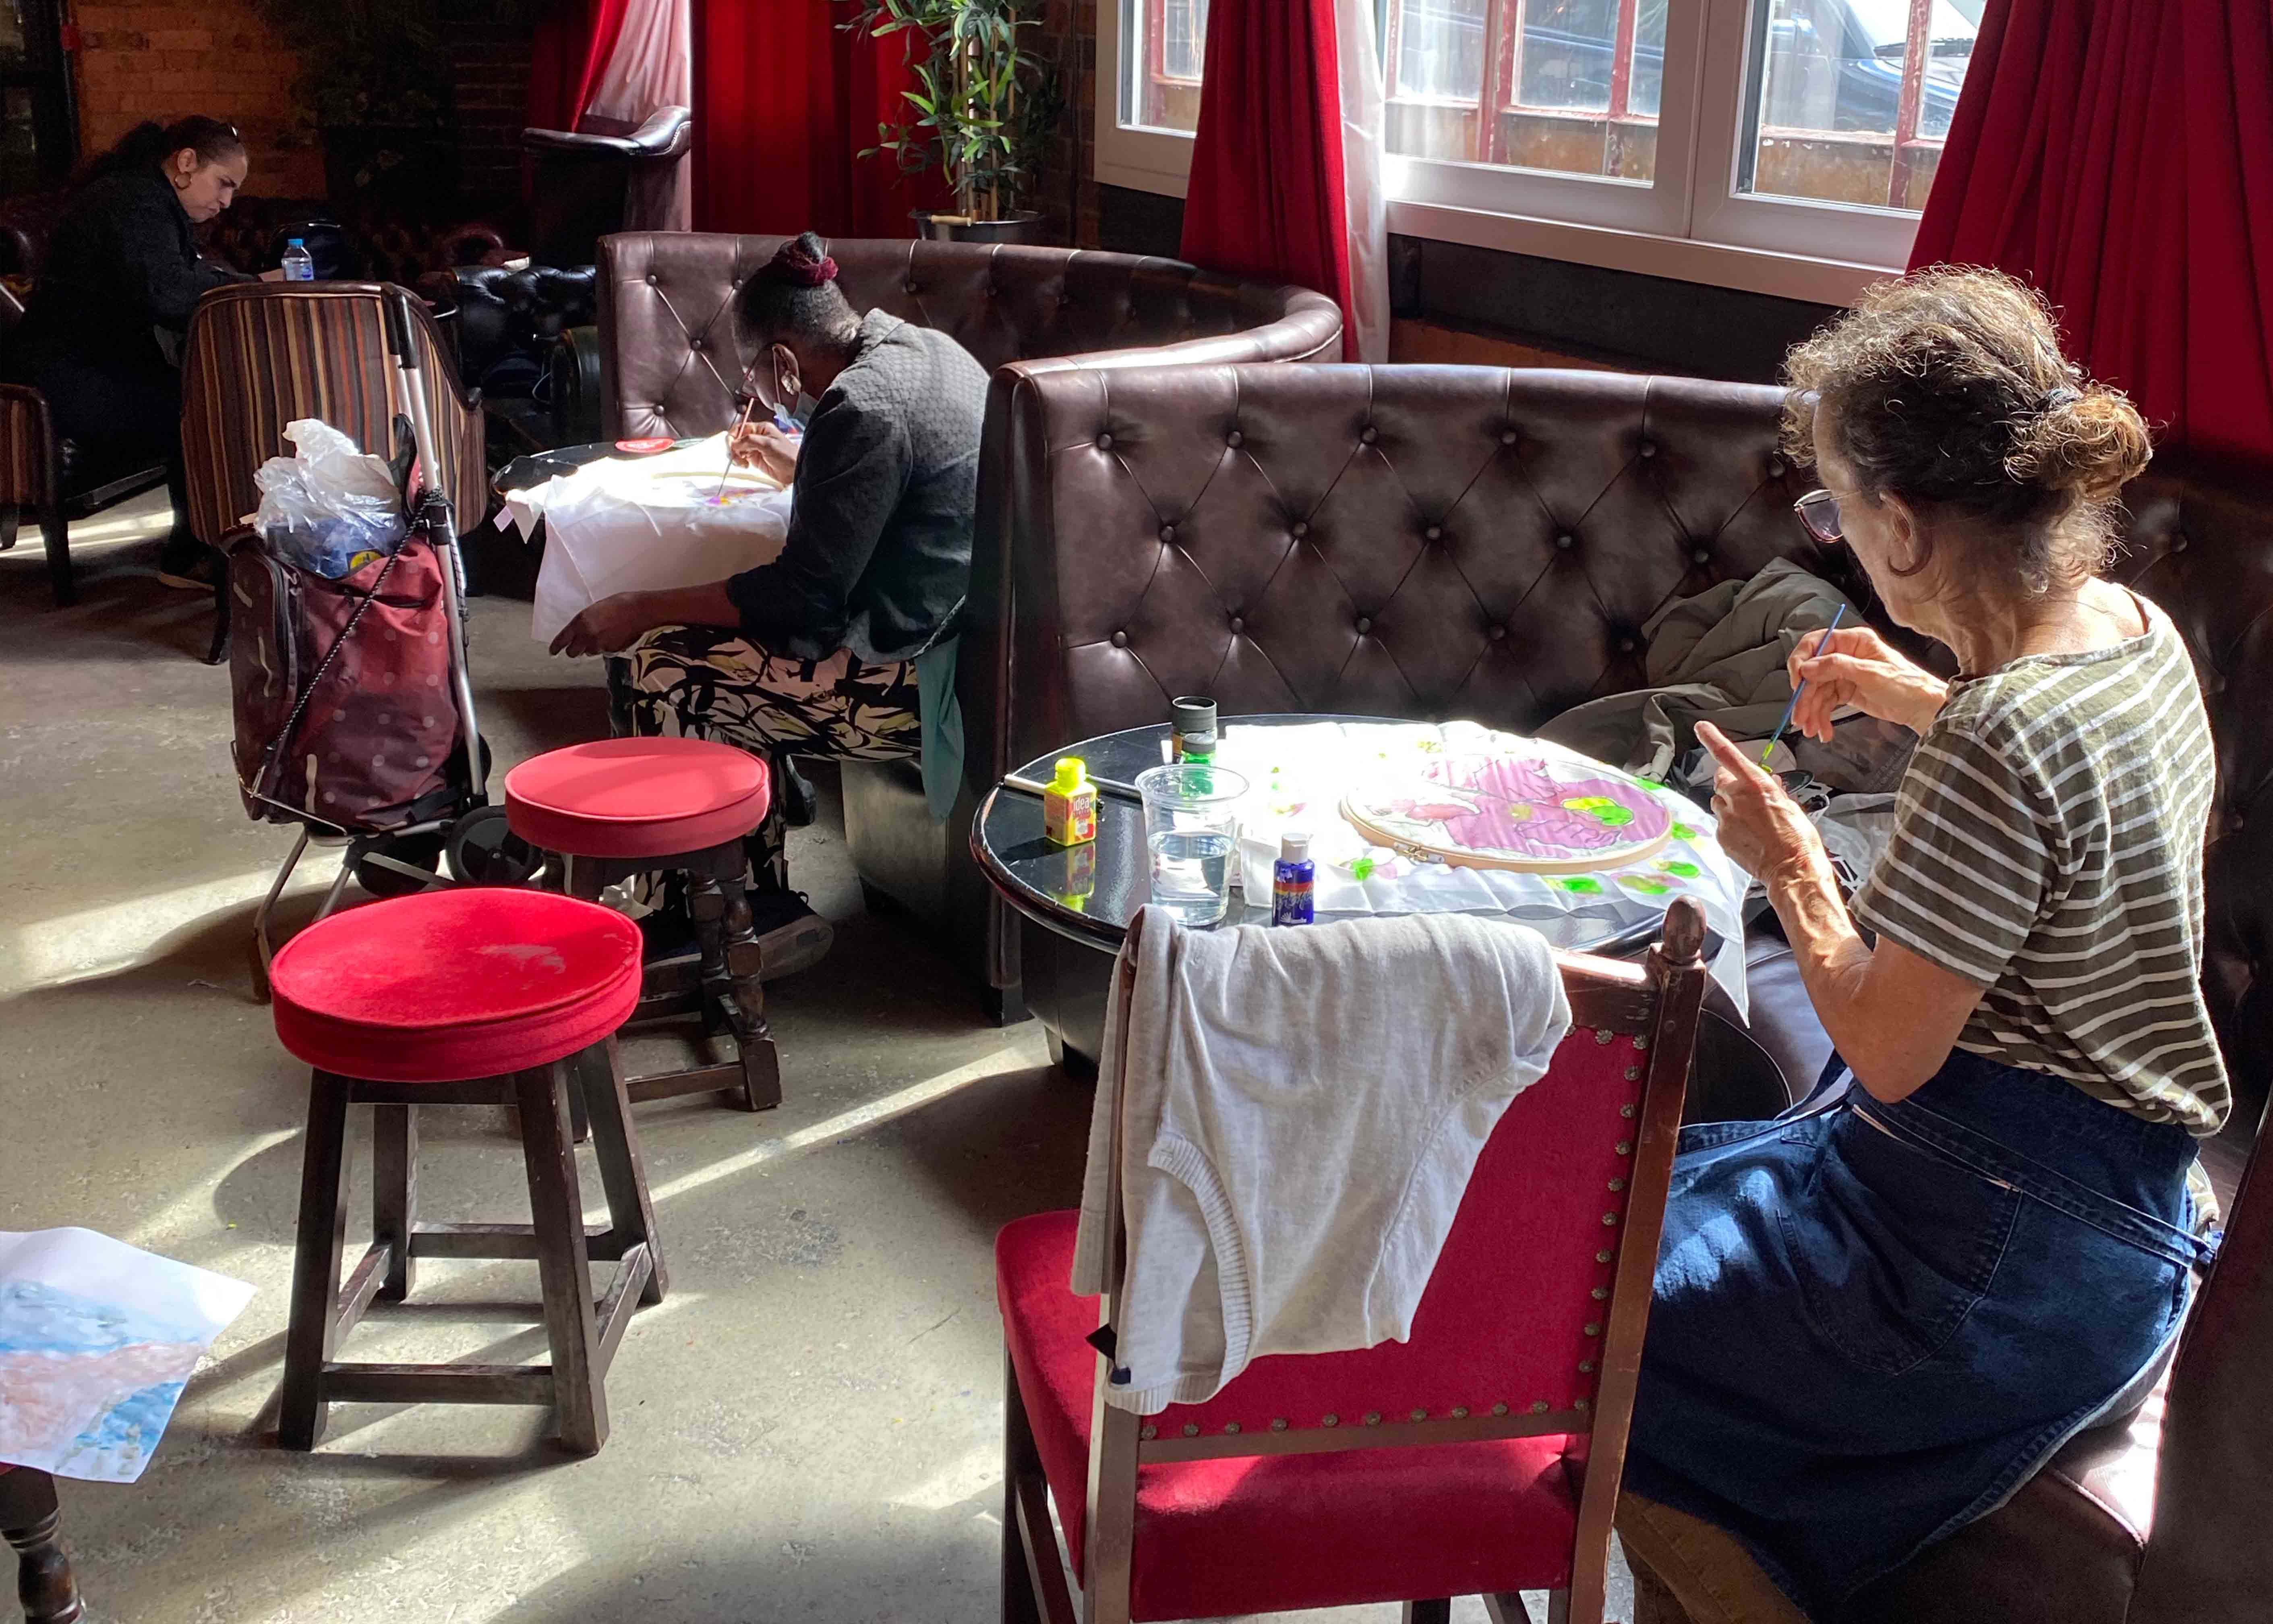 Participants paiting and sat individually in booths in a pub